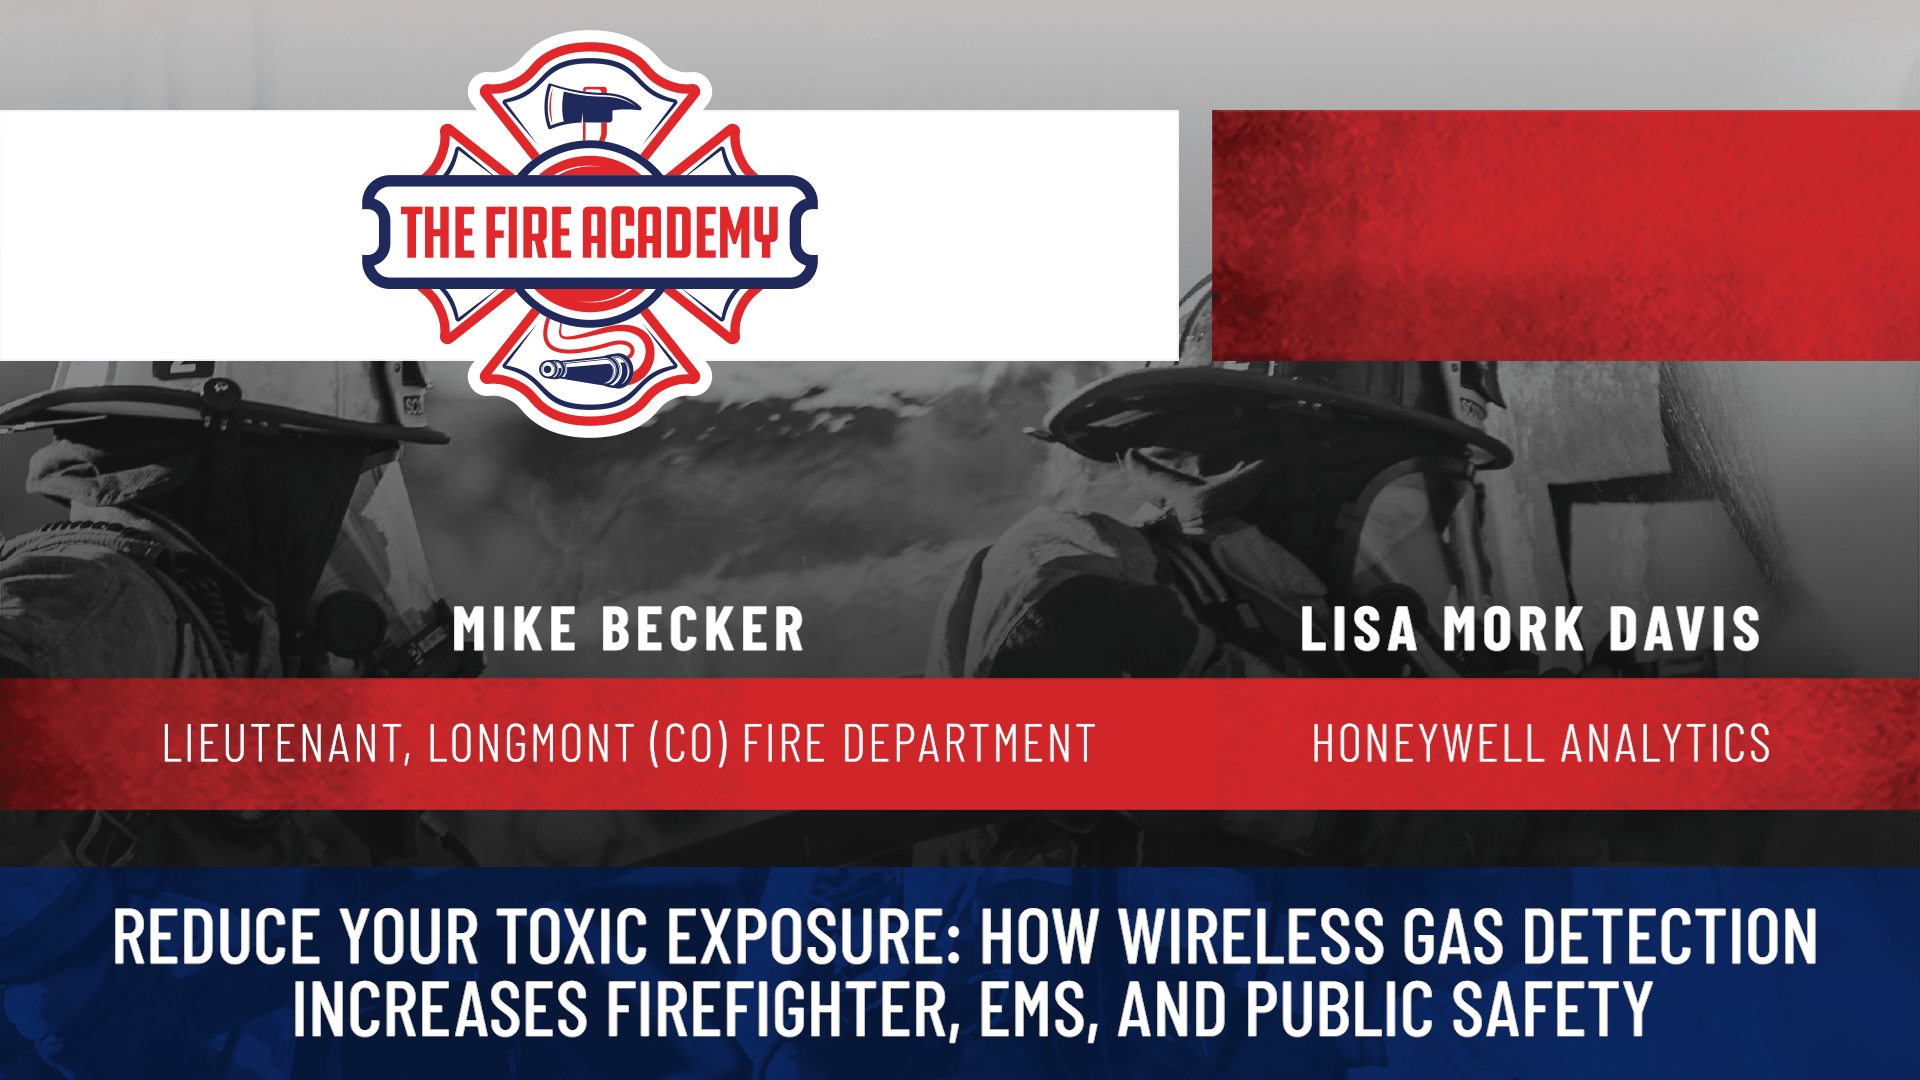 Reduce Your Toxic Exposure: How Wireless Gas Detection Increases Firefighter, EMS, and Public Safety